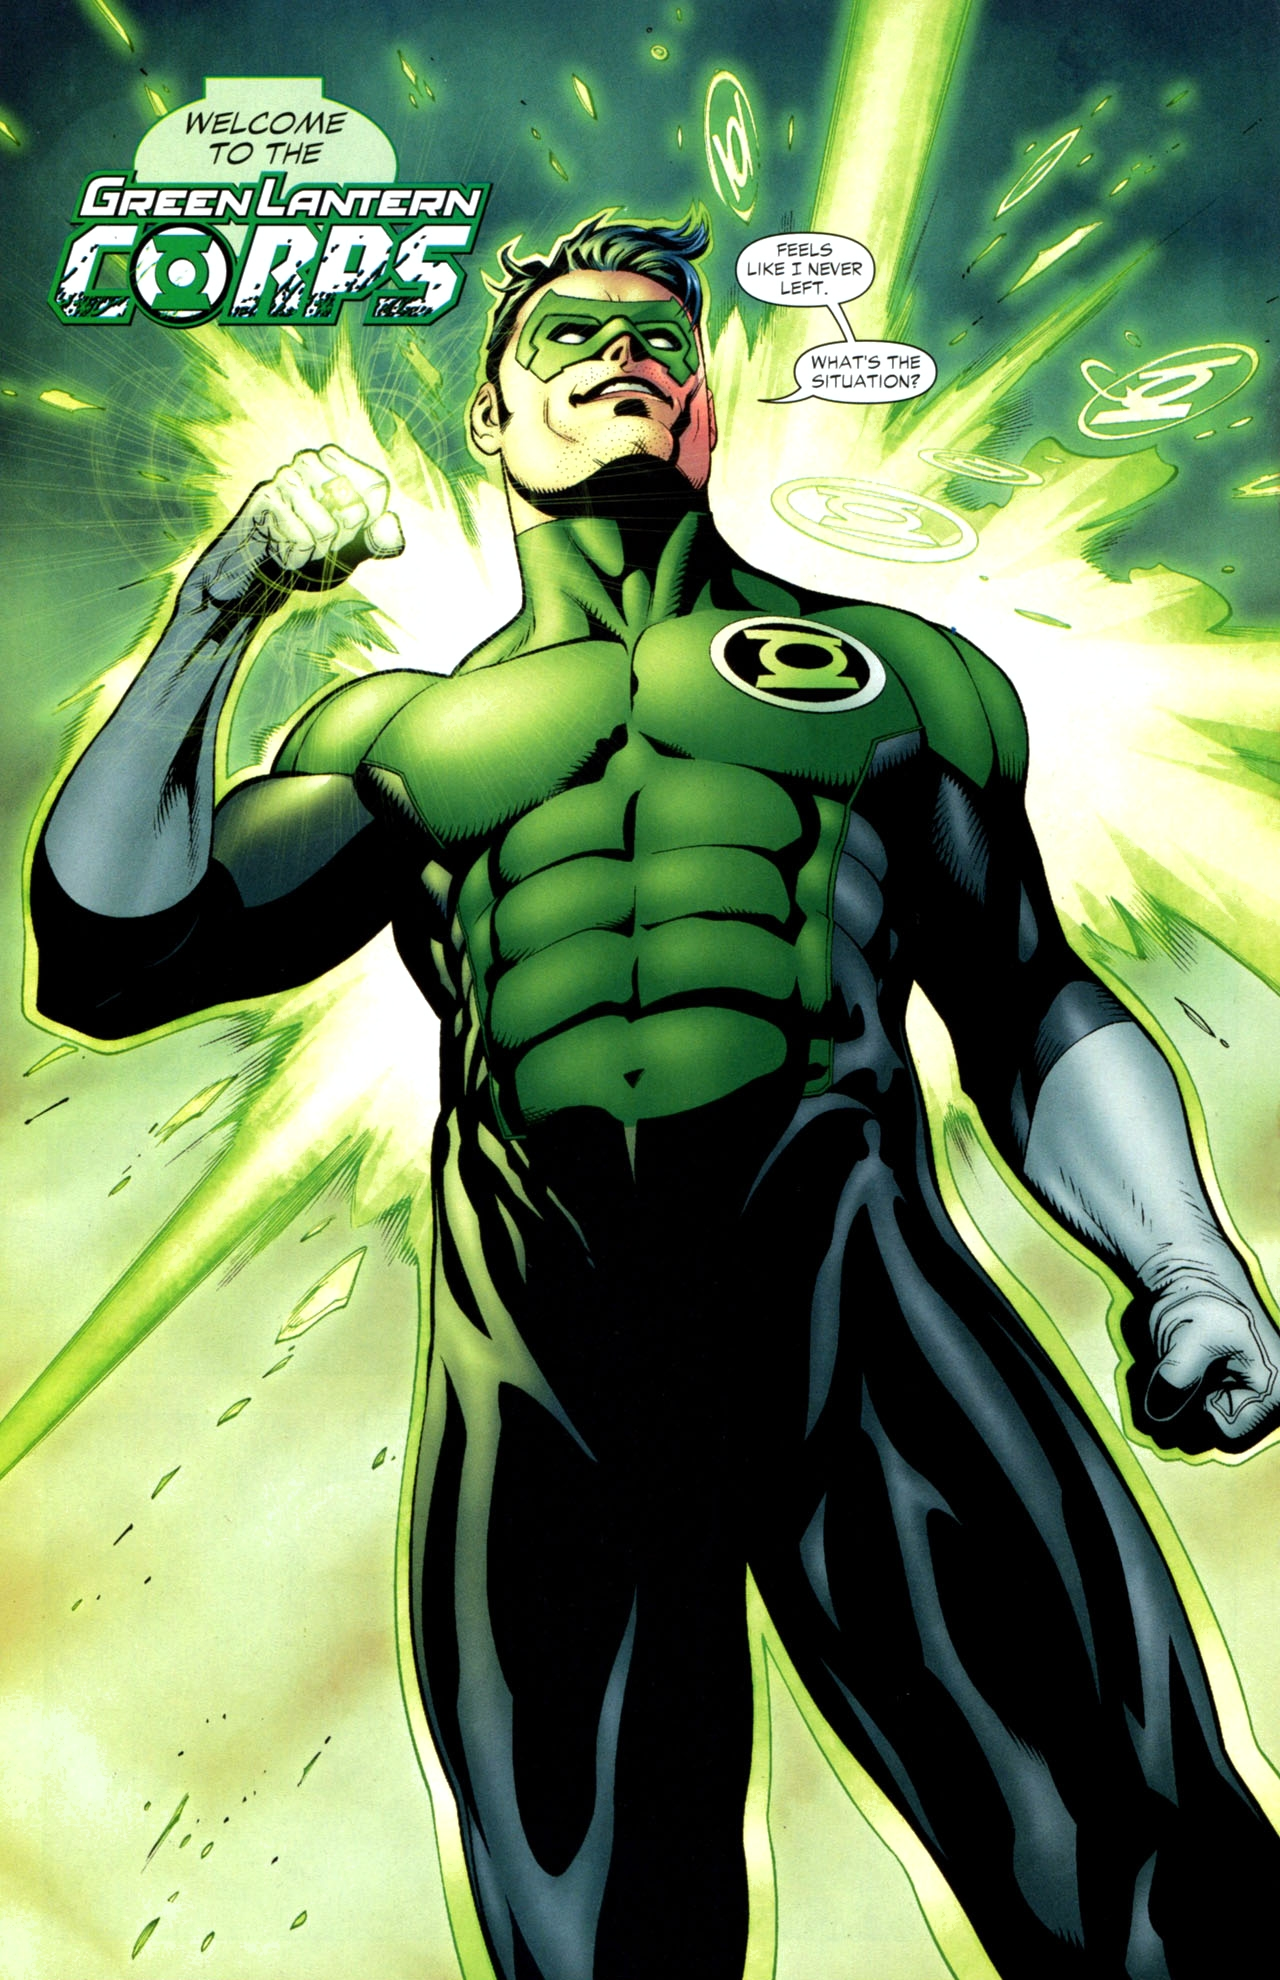 http://images2.wikia.nocookie.net/__cb20101009181630/marvel_dc/images/3/35/Kyle_Rayner_06.jpg